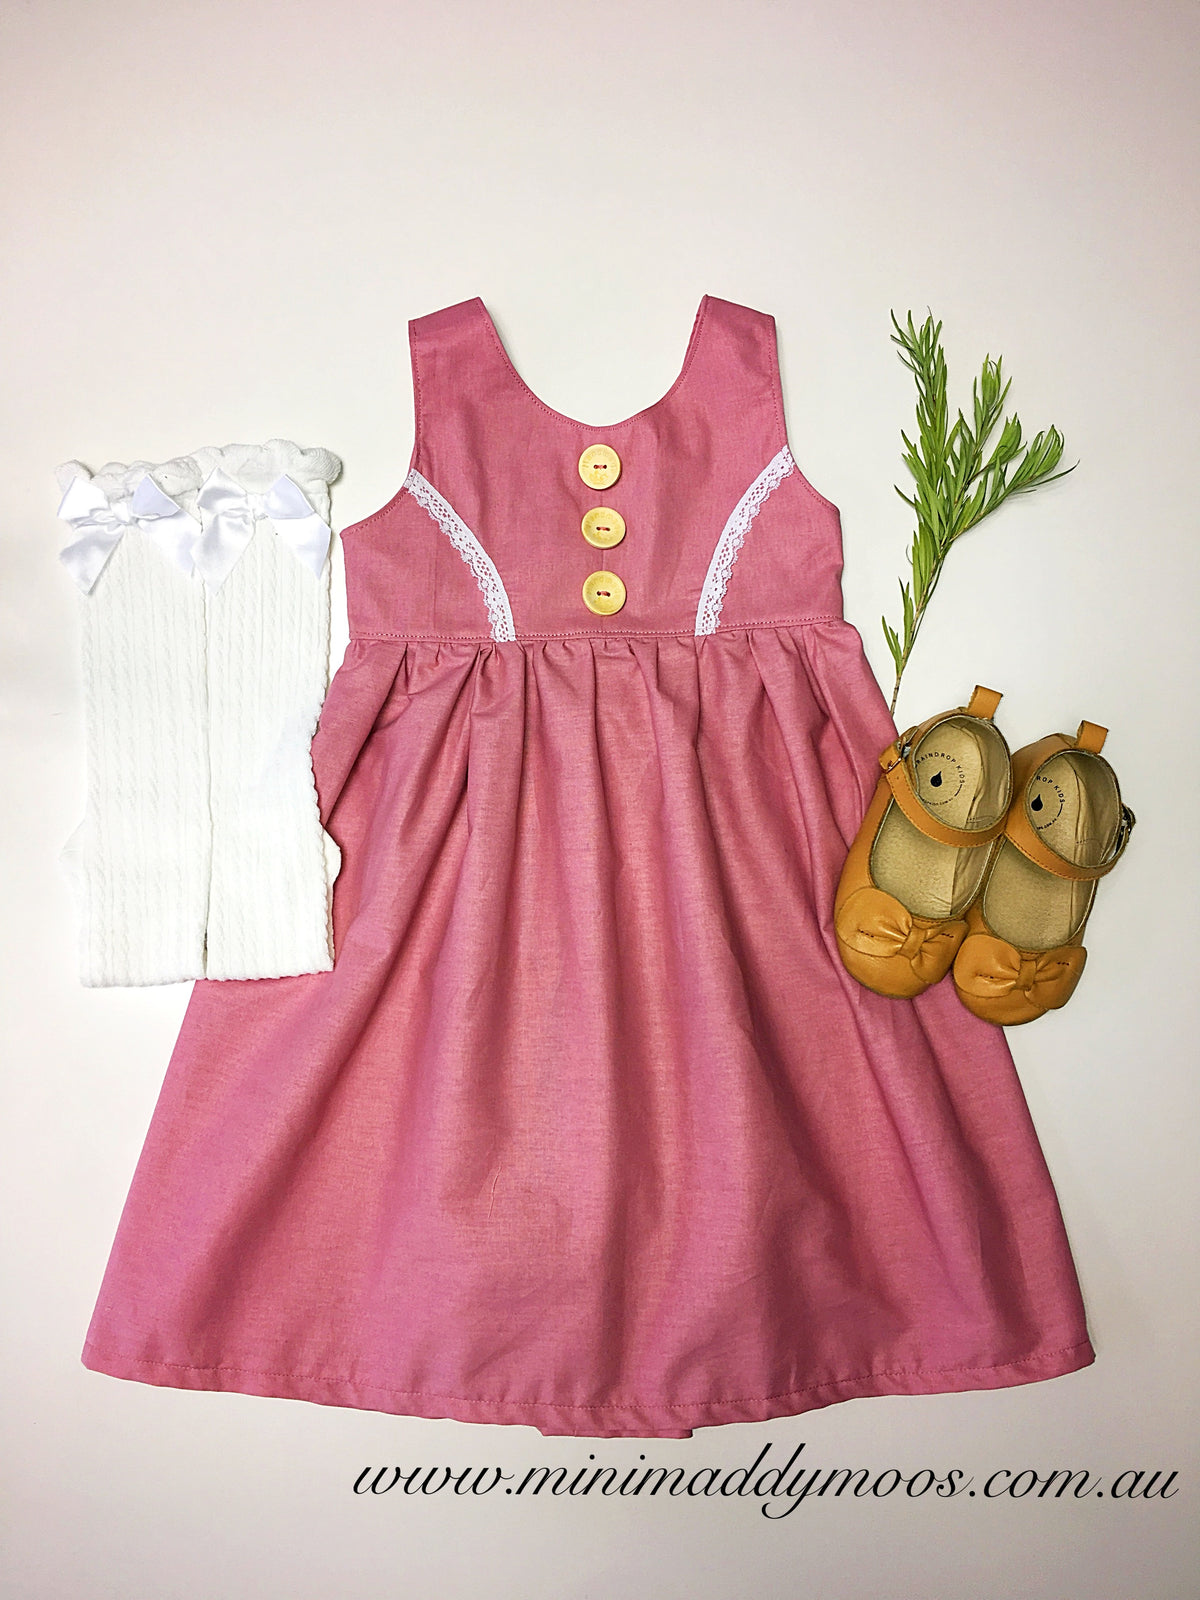 Dusty Pink Milly Rose Button Dress - Mini Maddy Moo's